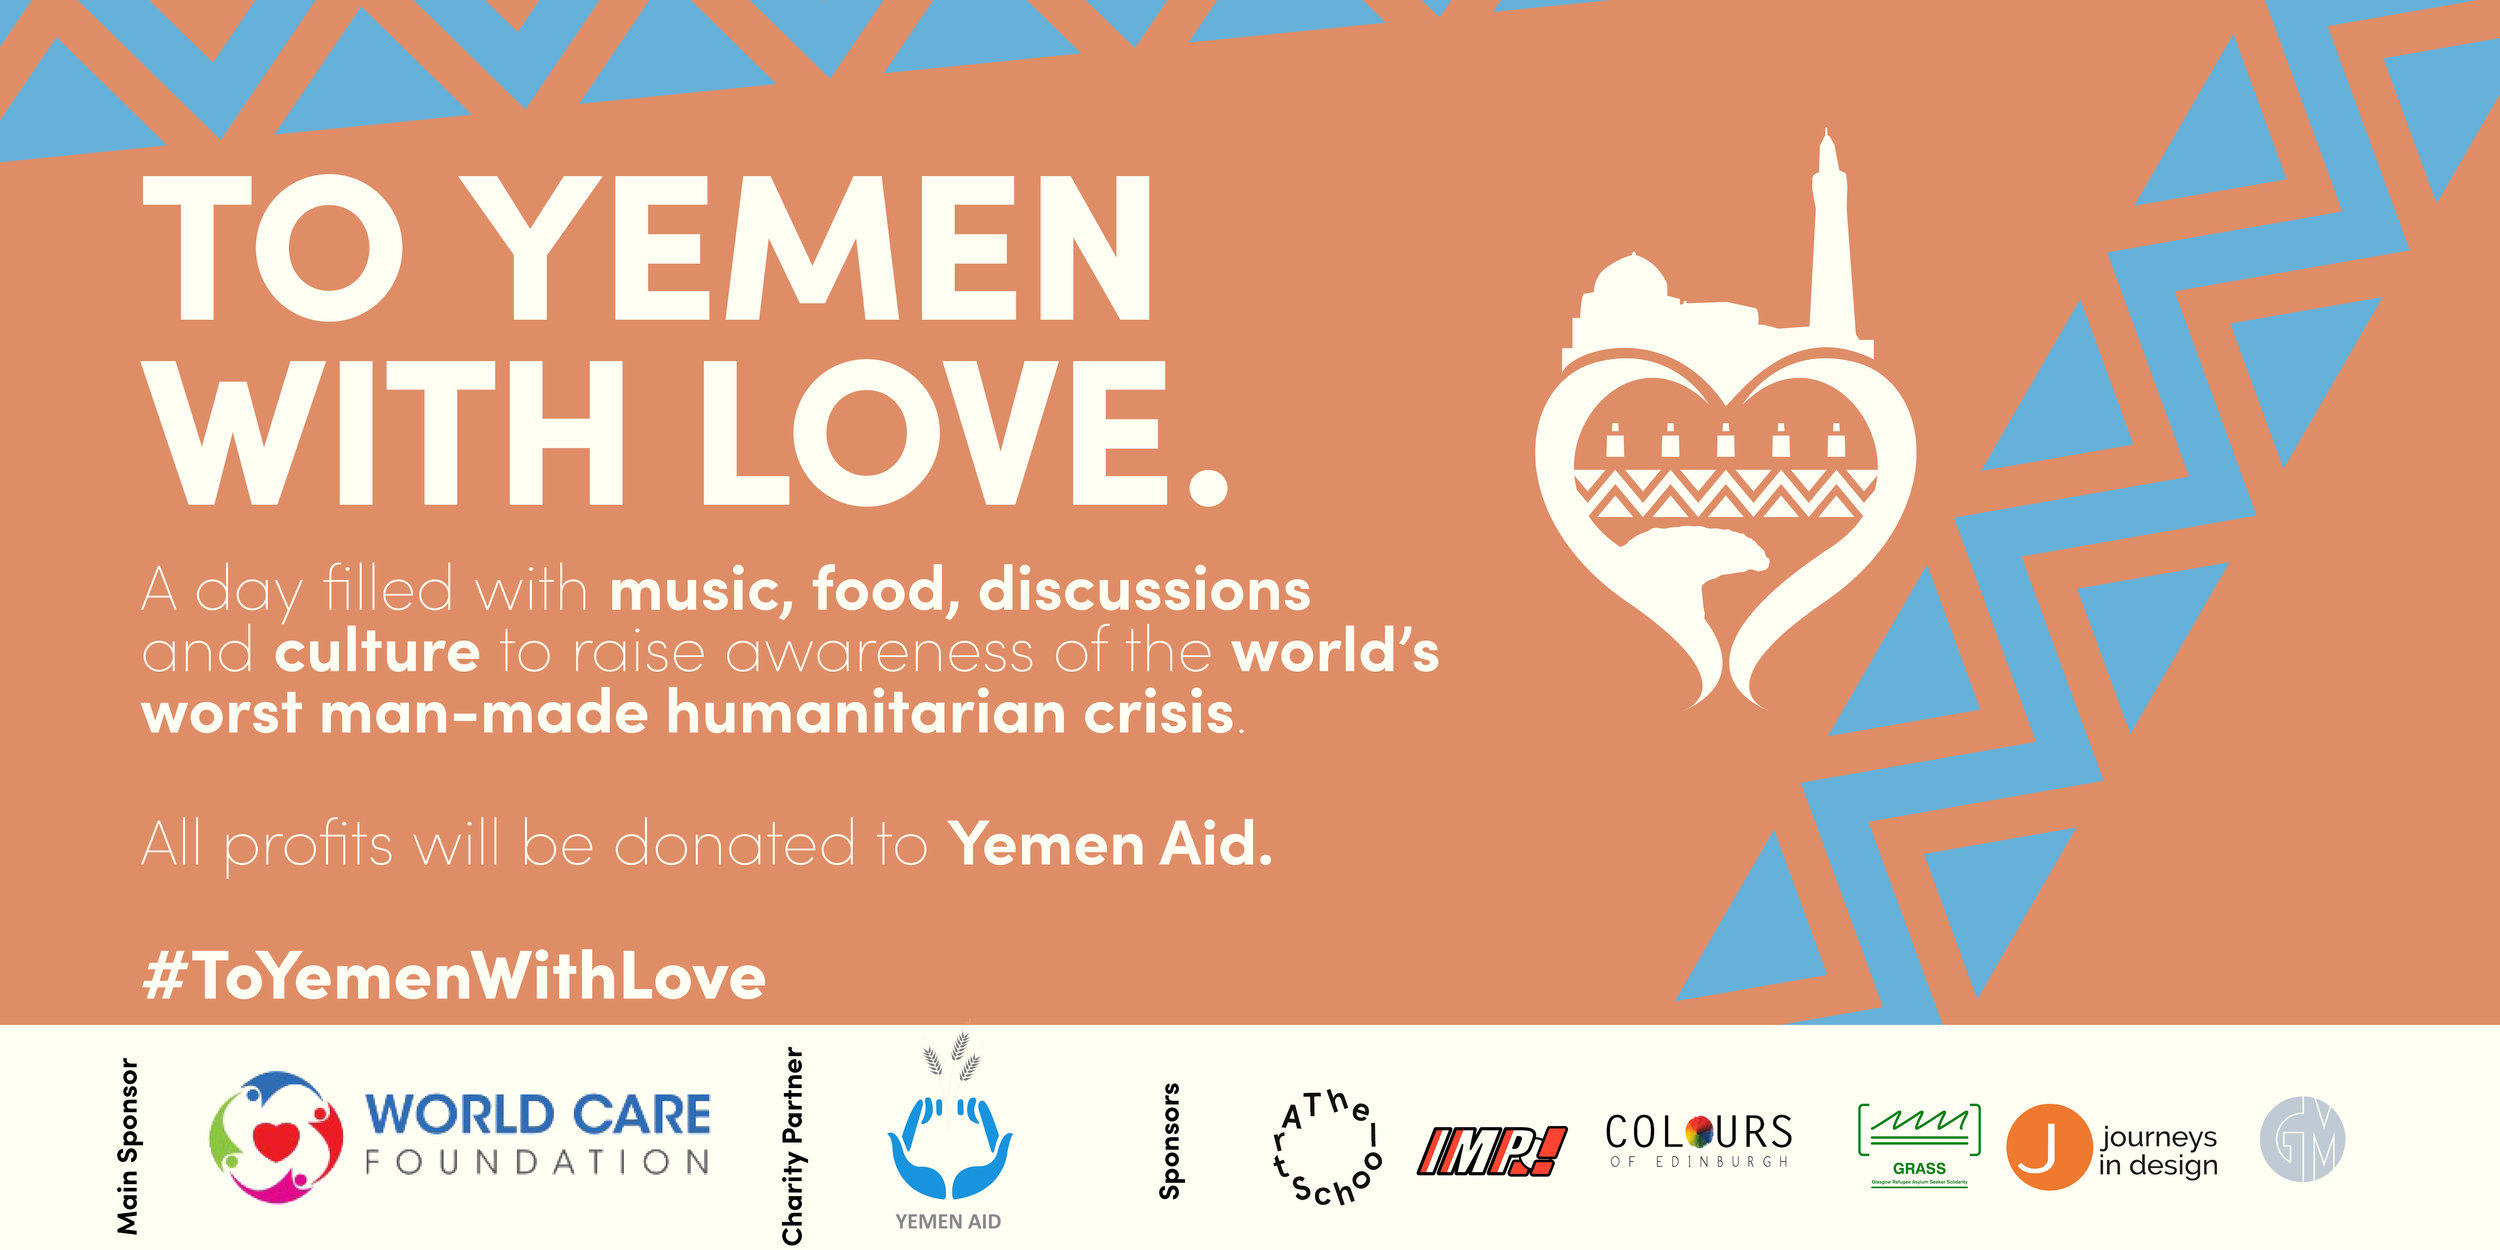 To Yemen With Love Event 2019